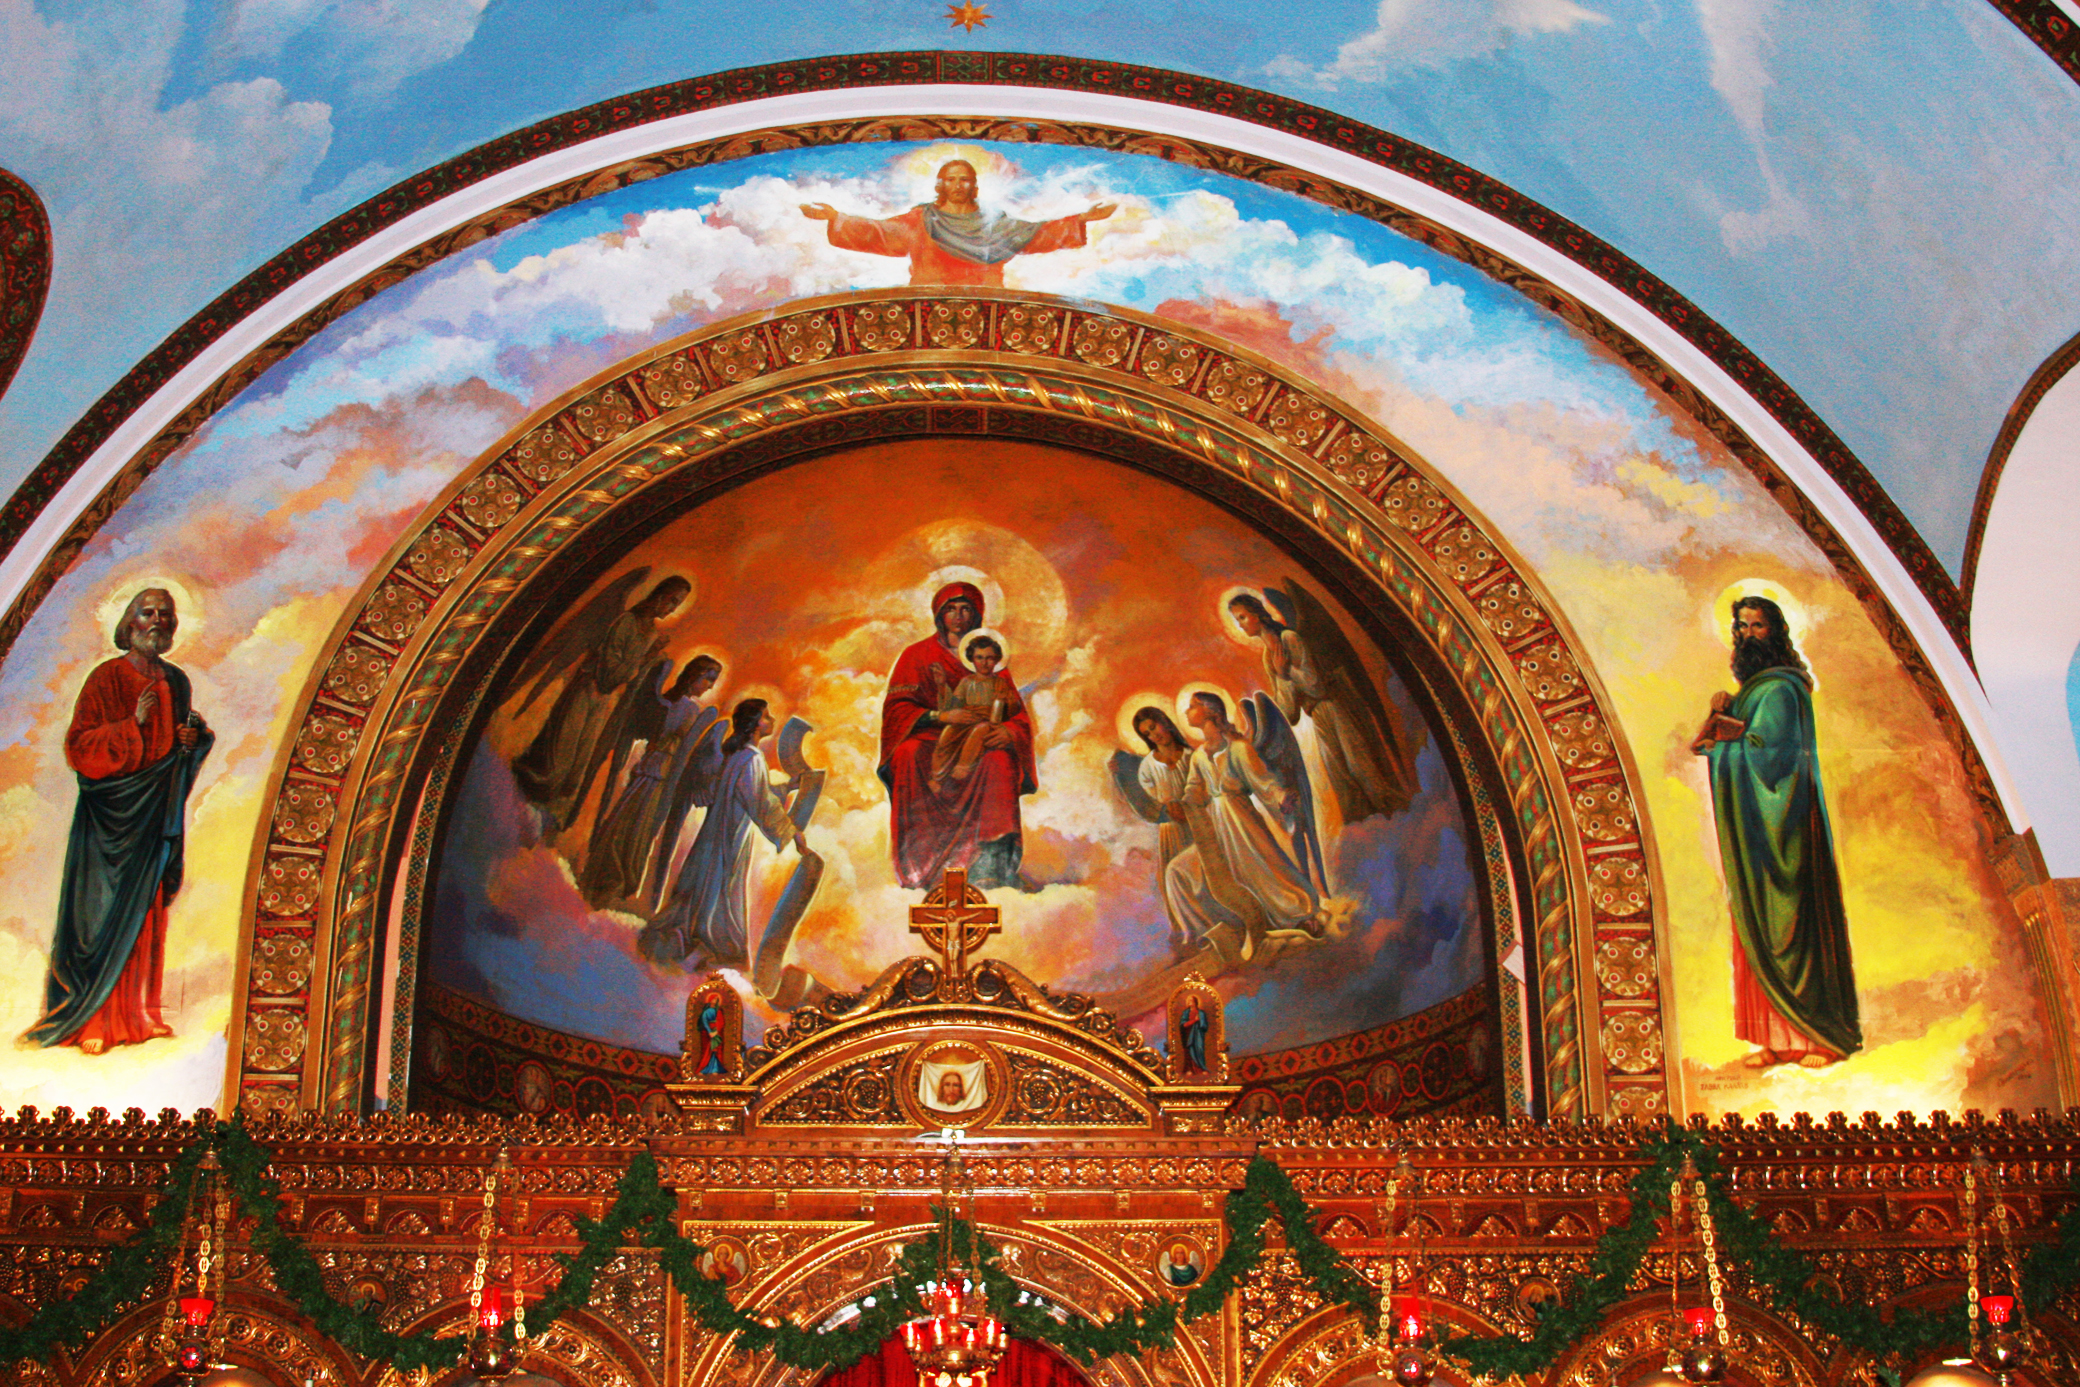 St. Nicholas: Frescoes adorn the interior of this Eastern Orthodox church. Adnan Syed / Staff Writer